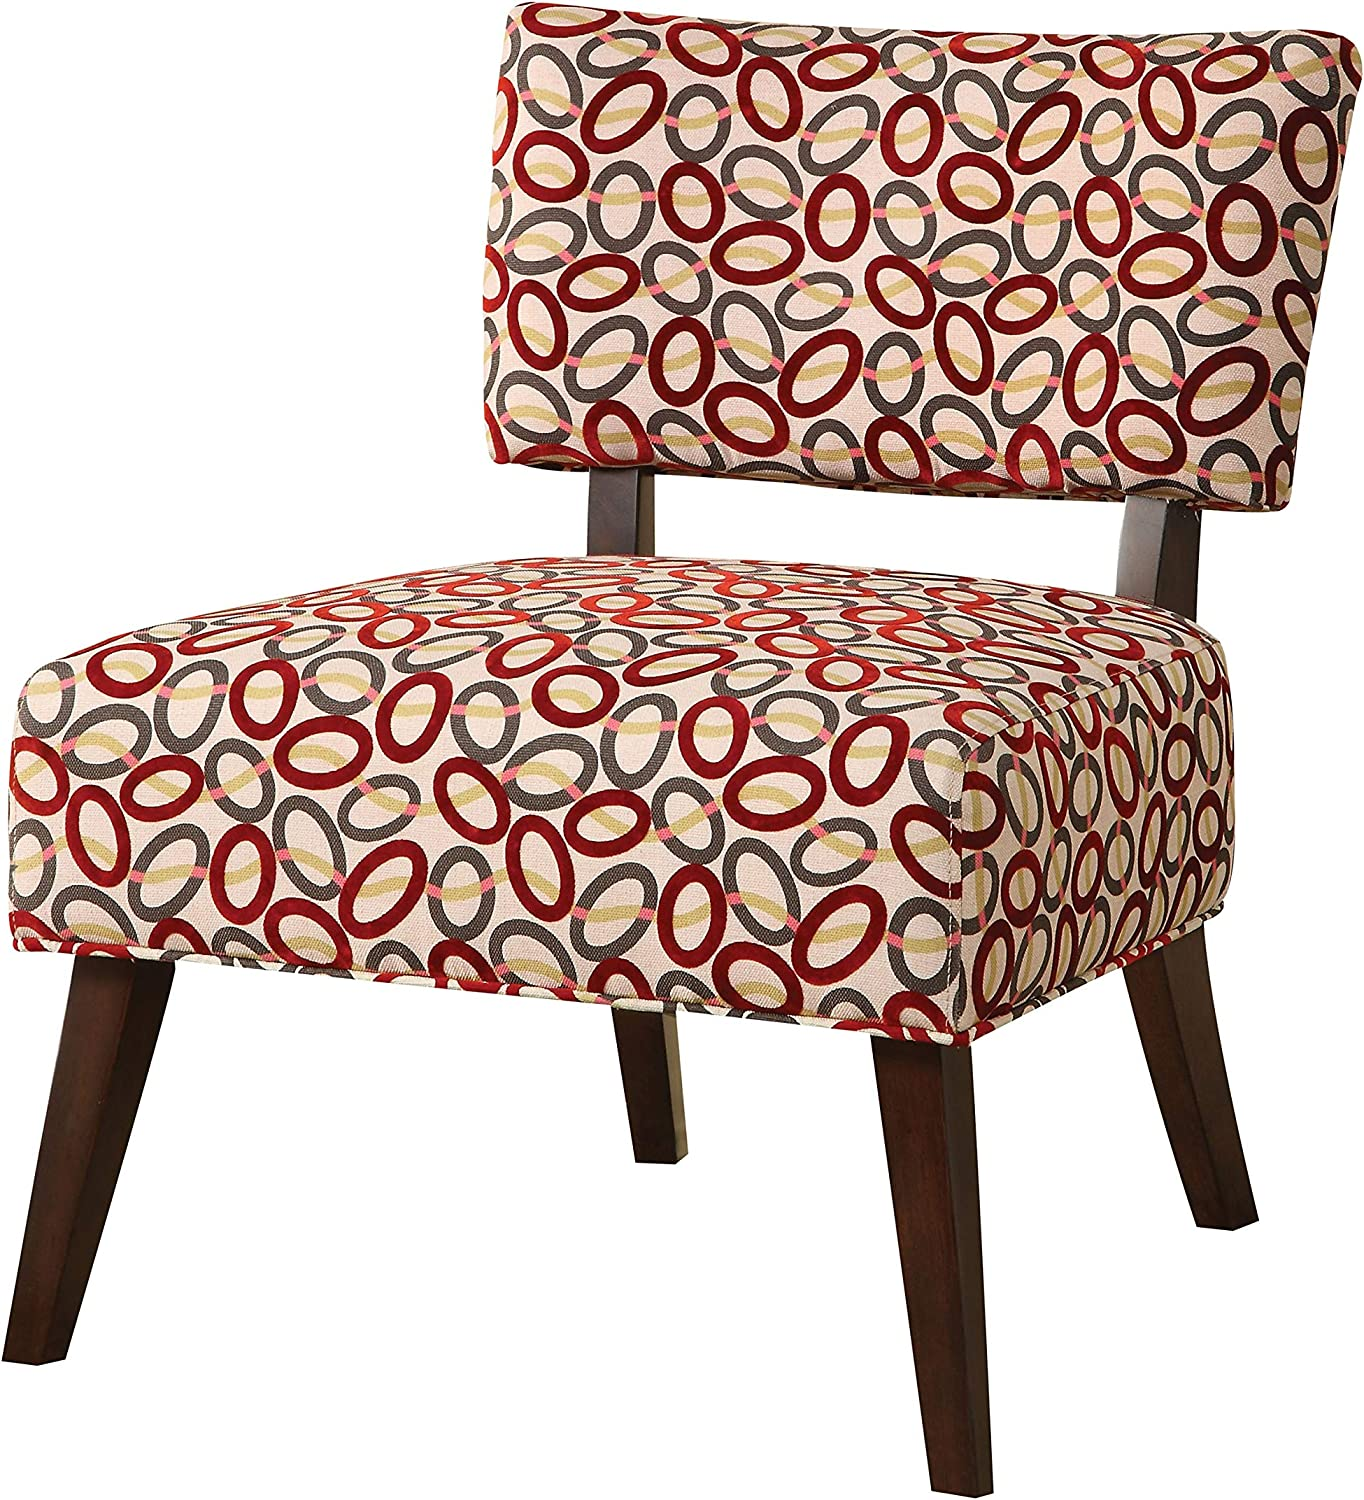 Major-Q Contemporary Style Linen Cheap mail order Attention brand specialty store Accent Living Be Chair for Room